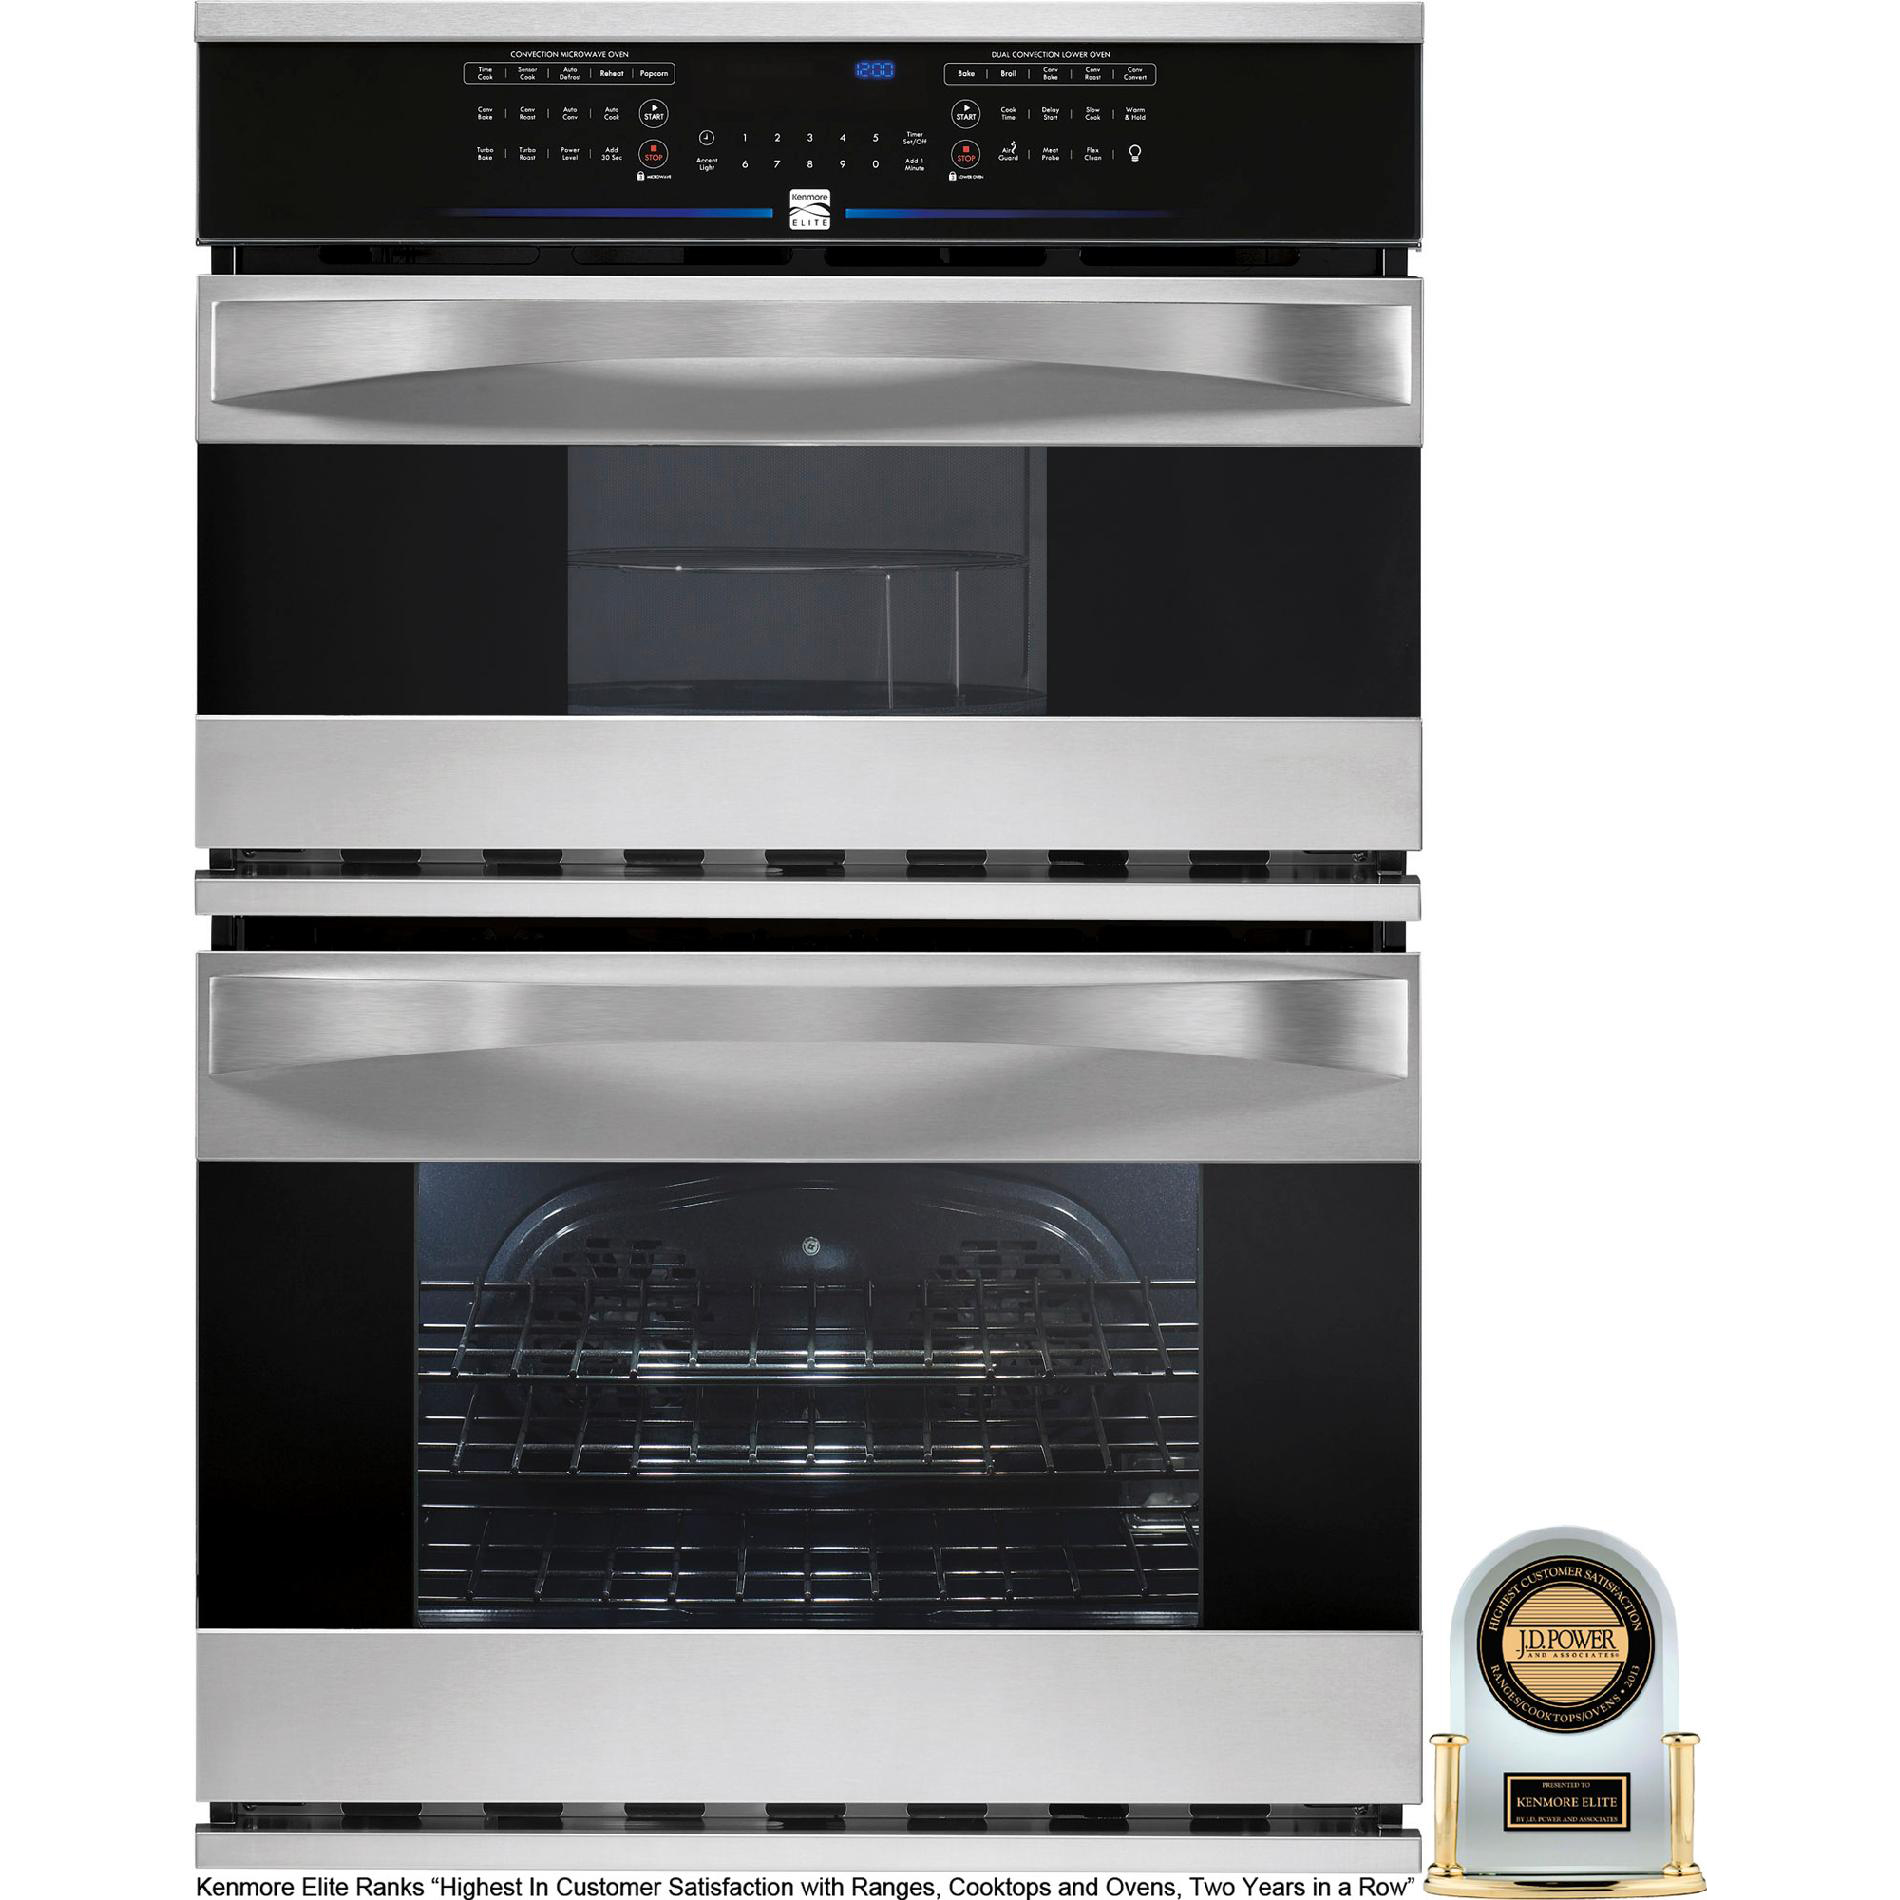 Kenmore Elite 30 Electric Combination Wall Oven W Convection Your Way Online Ping Earn Points On Tools Liances Electronics More